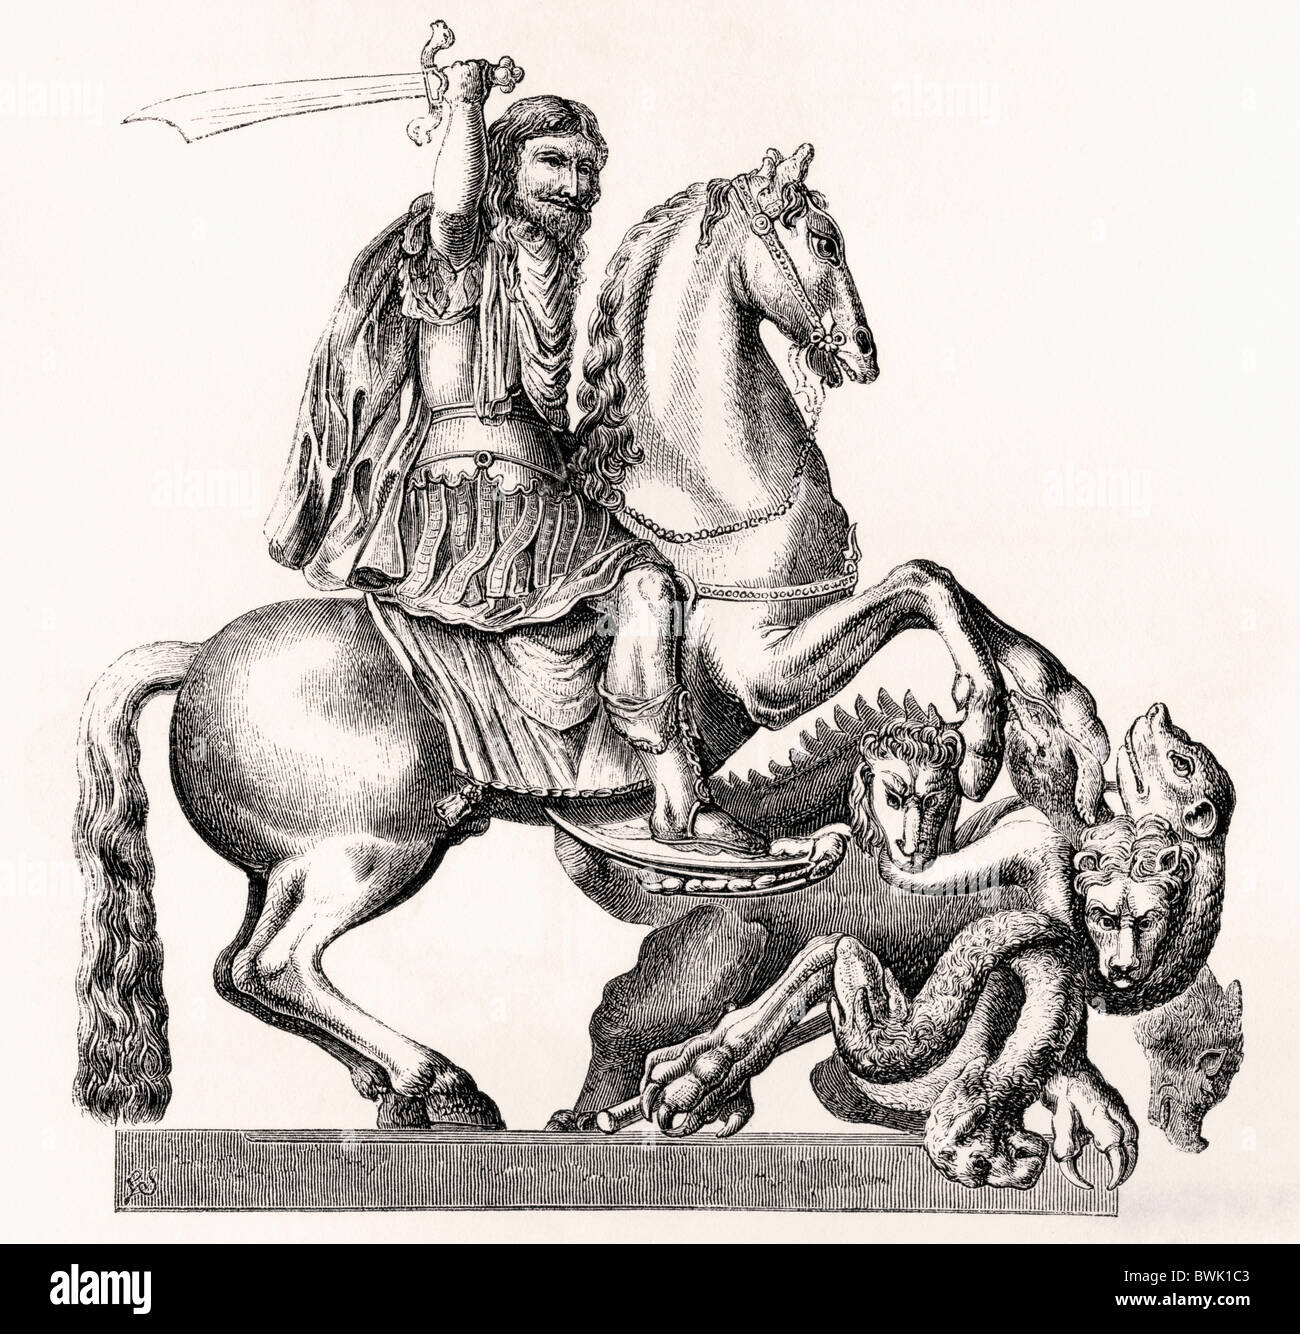 King Charles II of England represented as St George slaying the dragon. 17th century equestrian statue by Gottfried - Stock Image